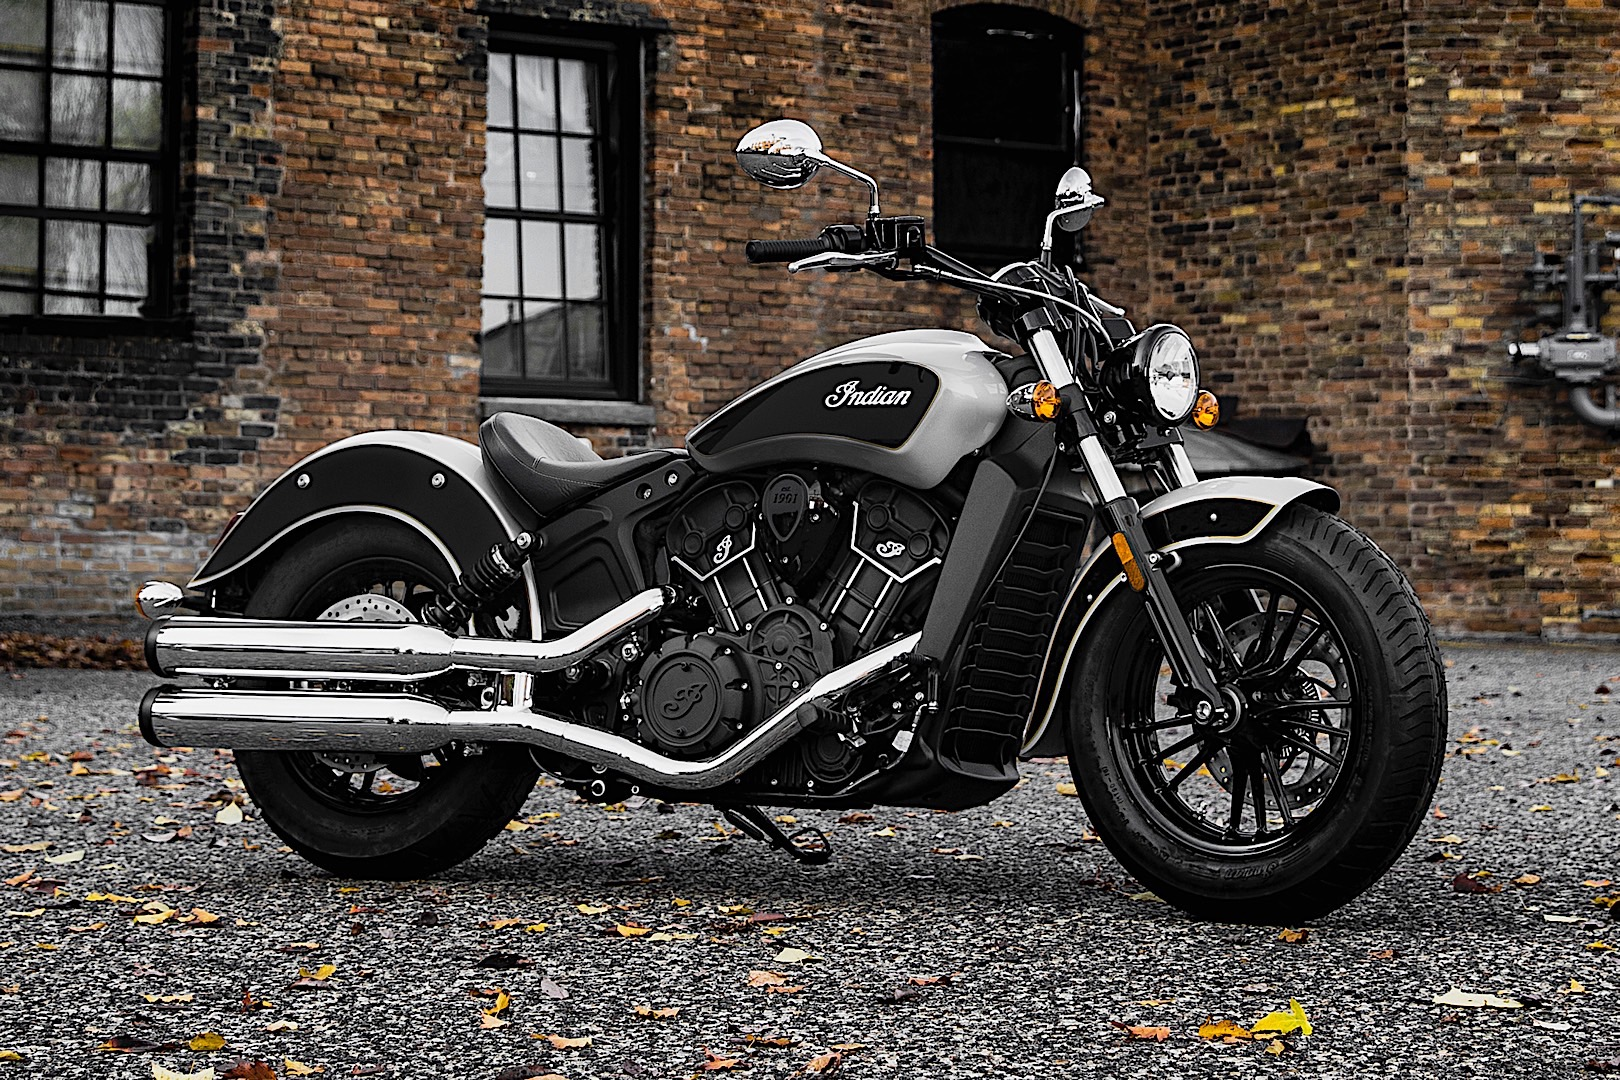 2017 indian scout sixty hits emea market in new two tone scheme autoevolution. Black Bedroom Furniture Sets. Home Design Ideas